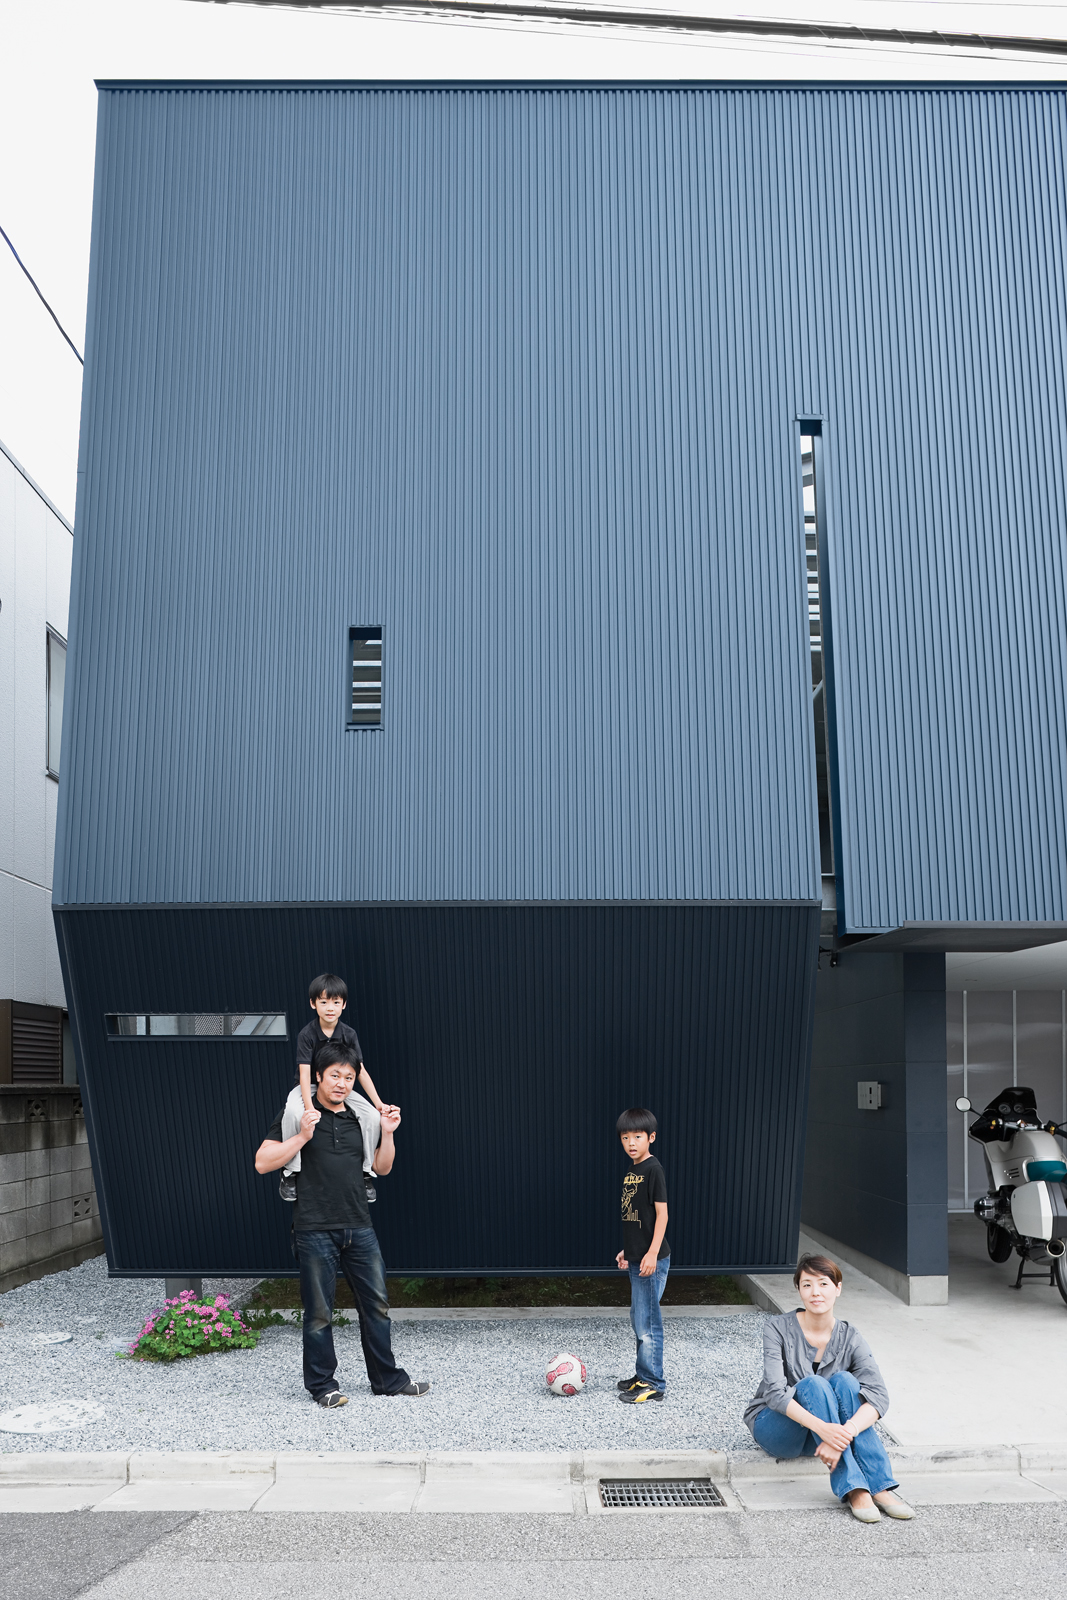 Dwell my house 2009 saitama japan child group architecture design interior modernism portrait residence